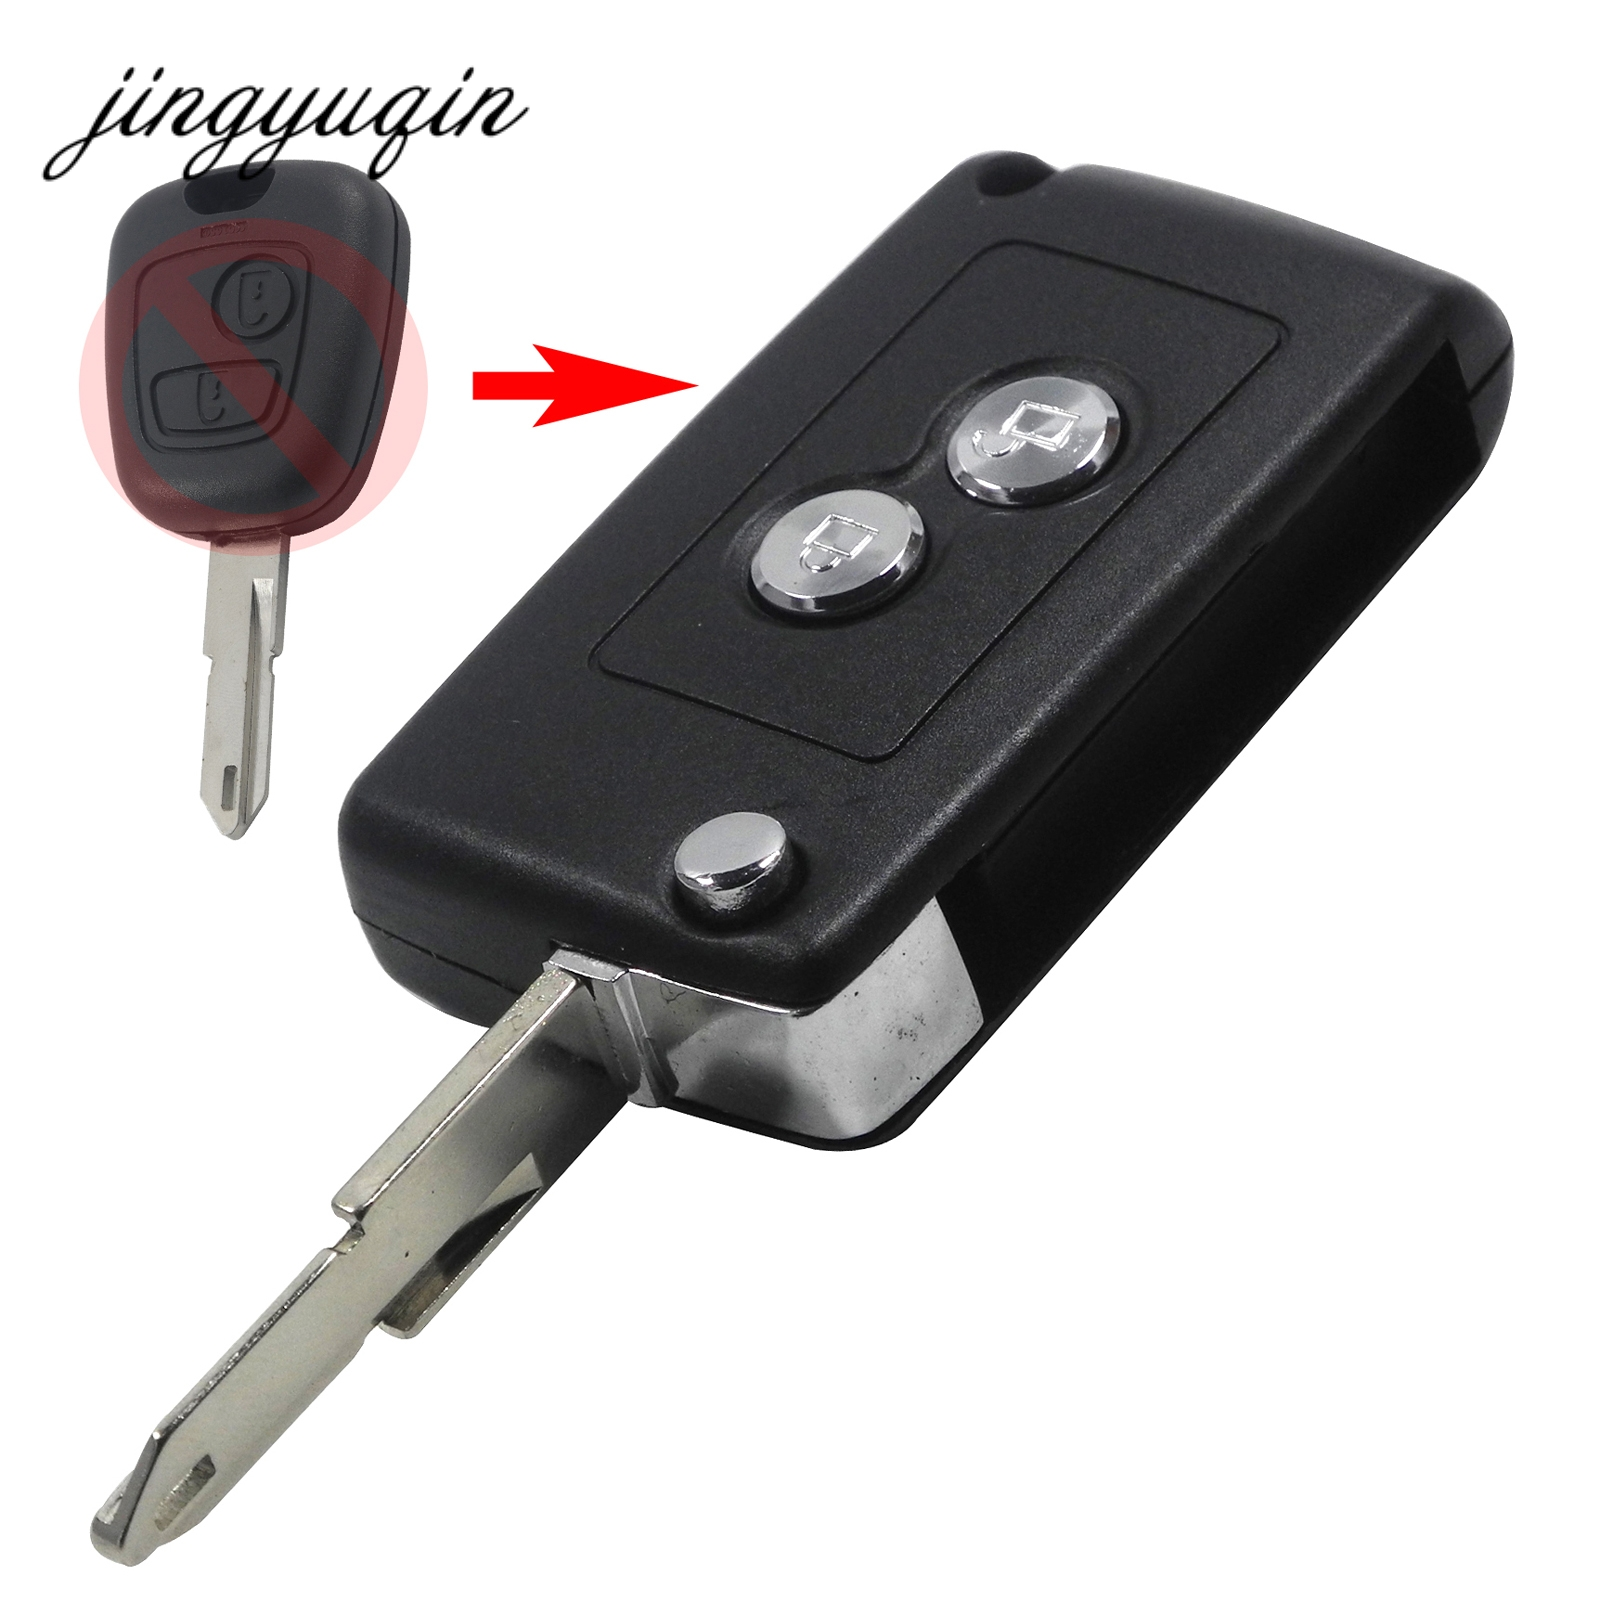 jingyuqin Modified 2 Buttons Folding Key Remote Case For C2 C3 Xsara Picasso Peugeot 206 207